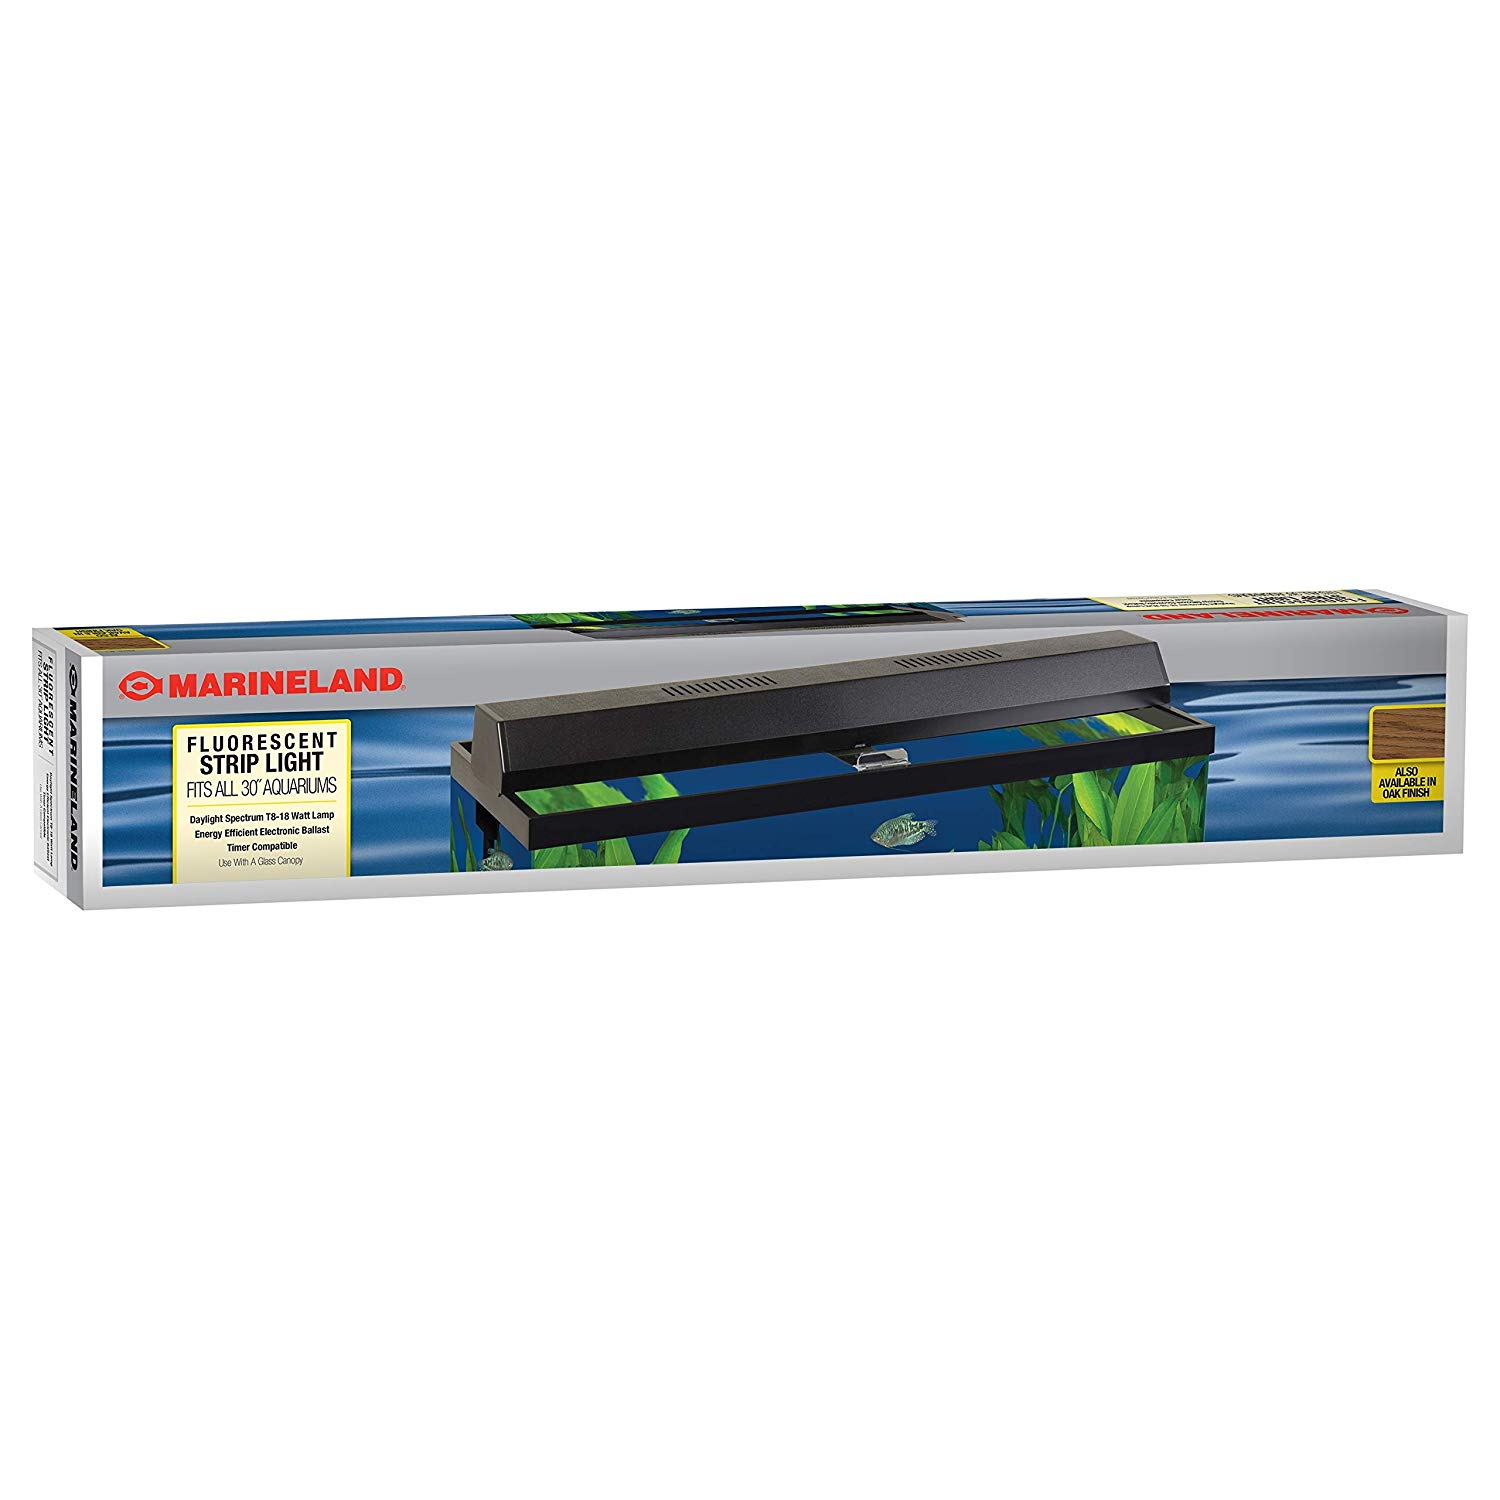 Perfecto Manufacturing APF26302 Marineland Fluorescent Perfect-a-Strip Light Reflector for Aquarium, 30-Inch, Black